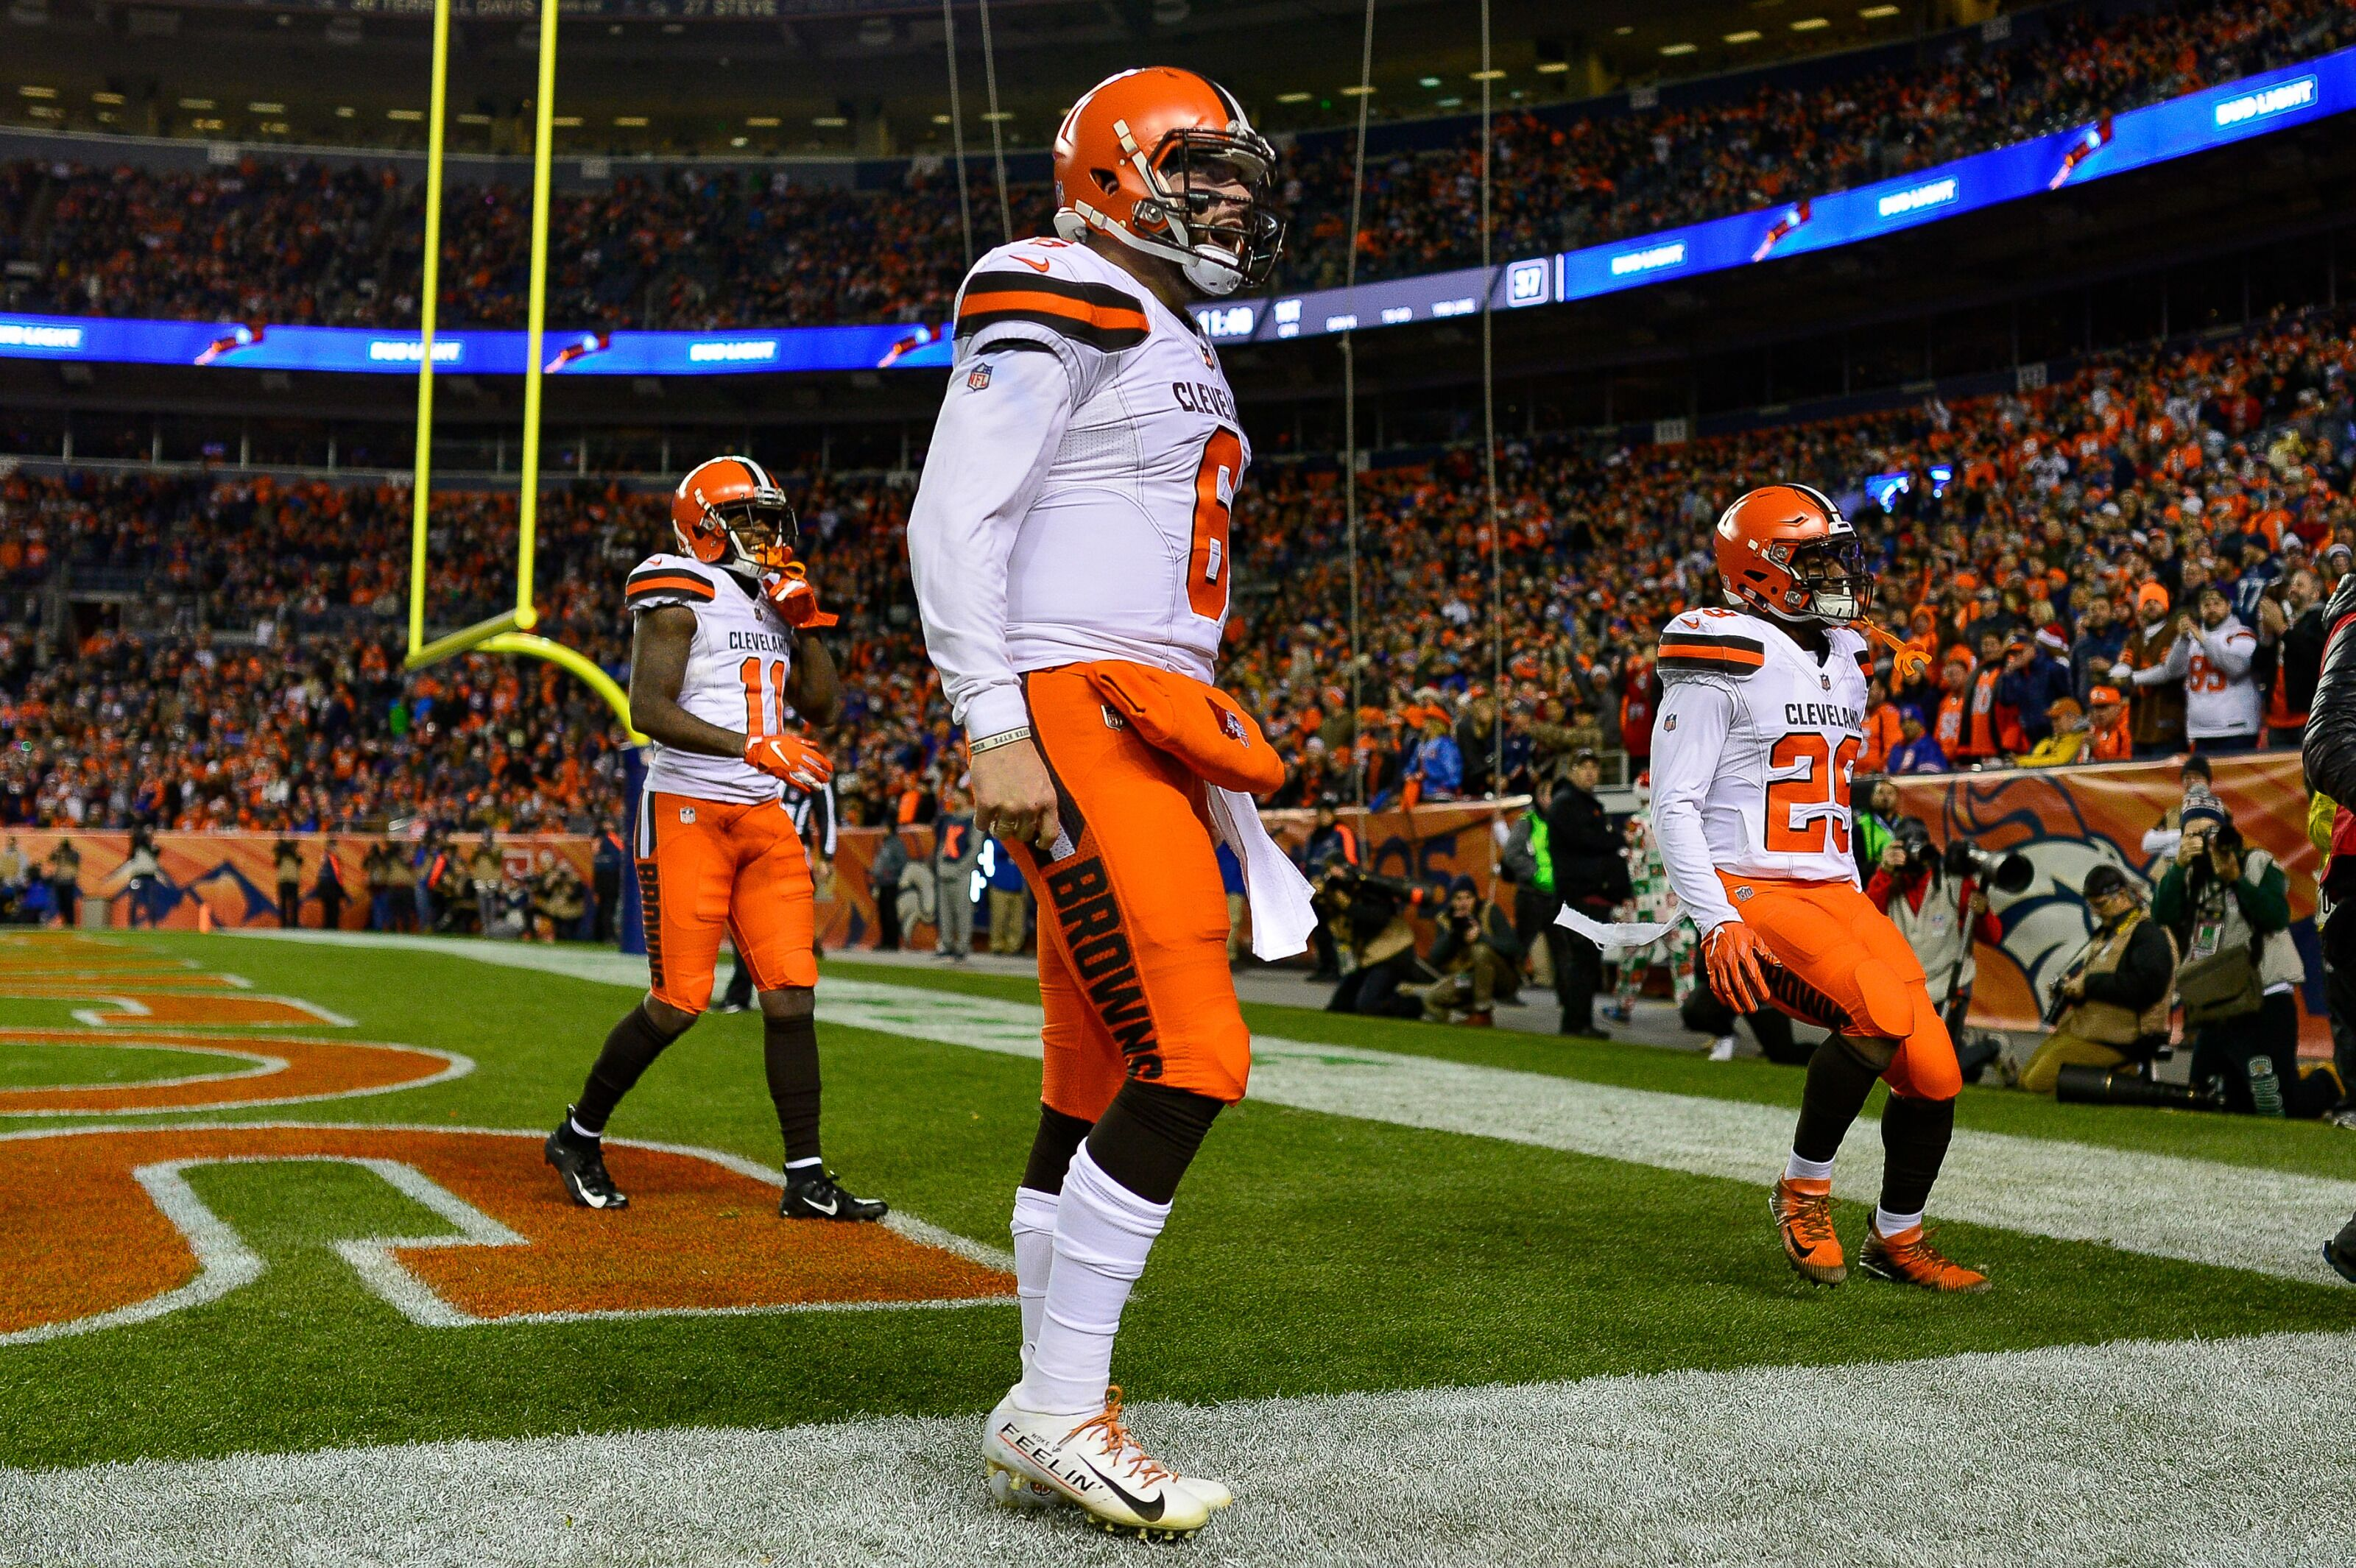 Cleveland Browns: Baker Mayfield drama, overreaction the new normal